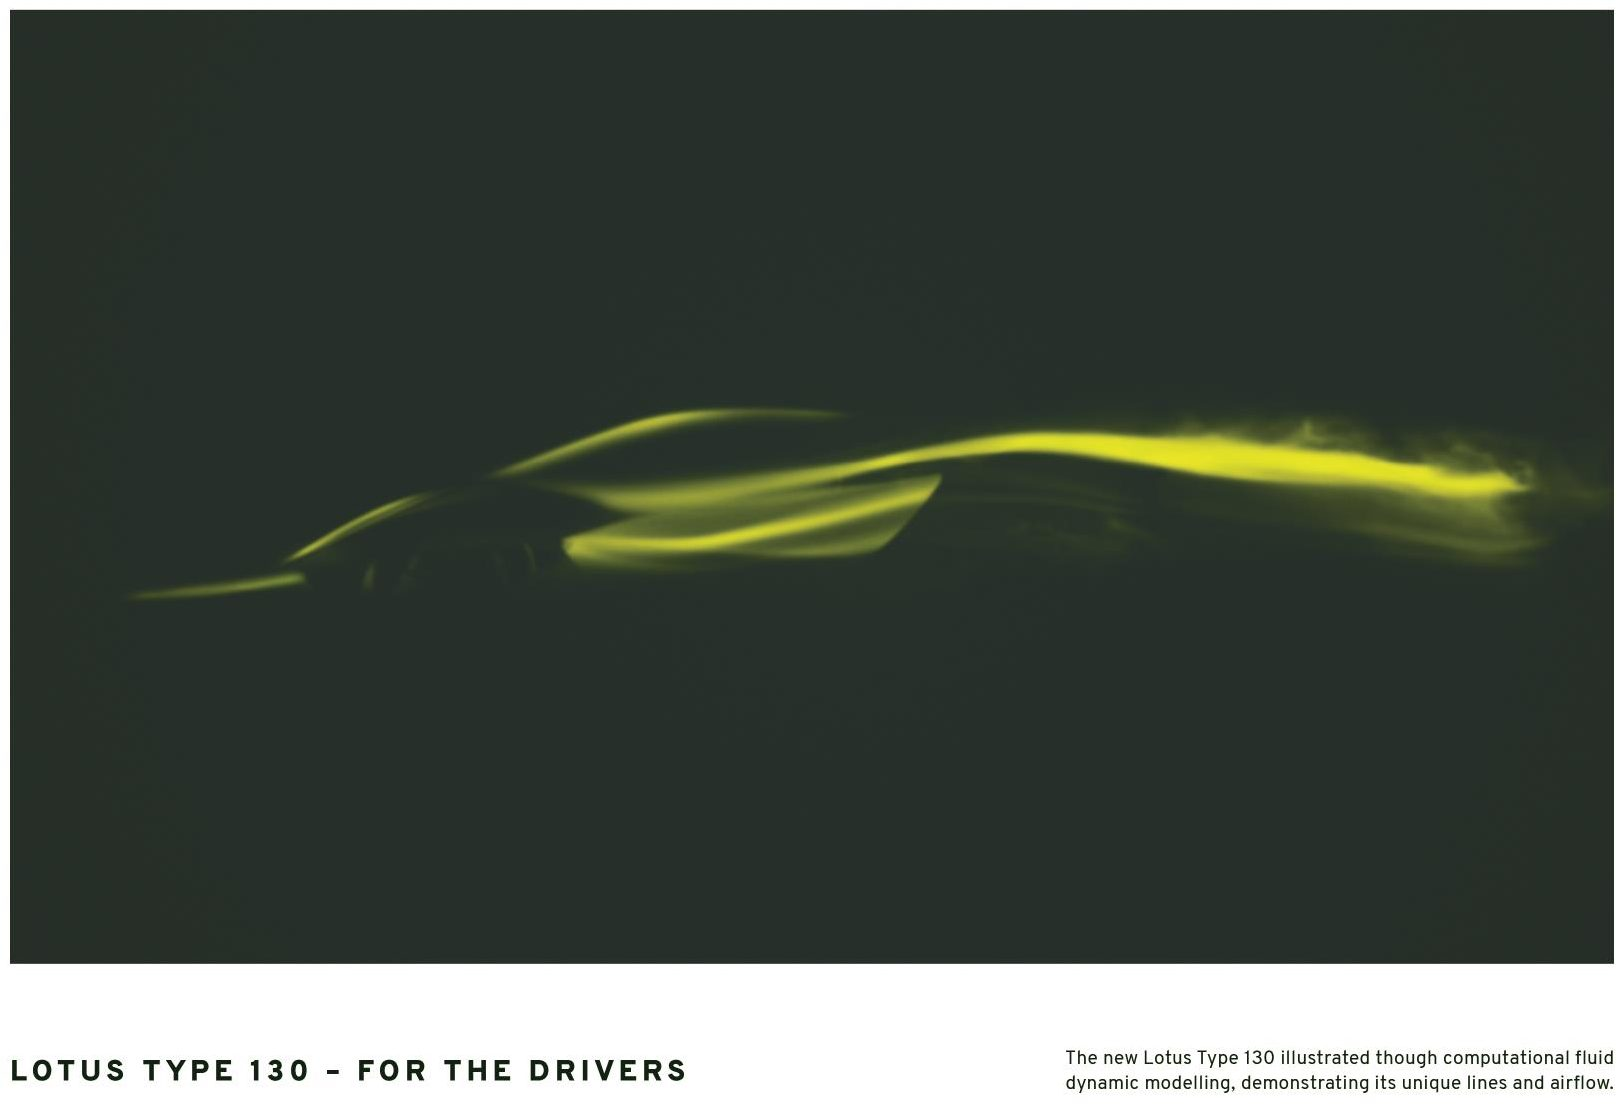 Lotus announces 'world's first full electric British hypercar', unveils teaser